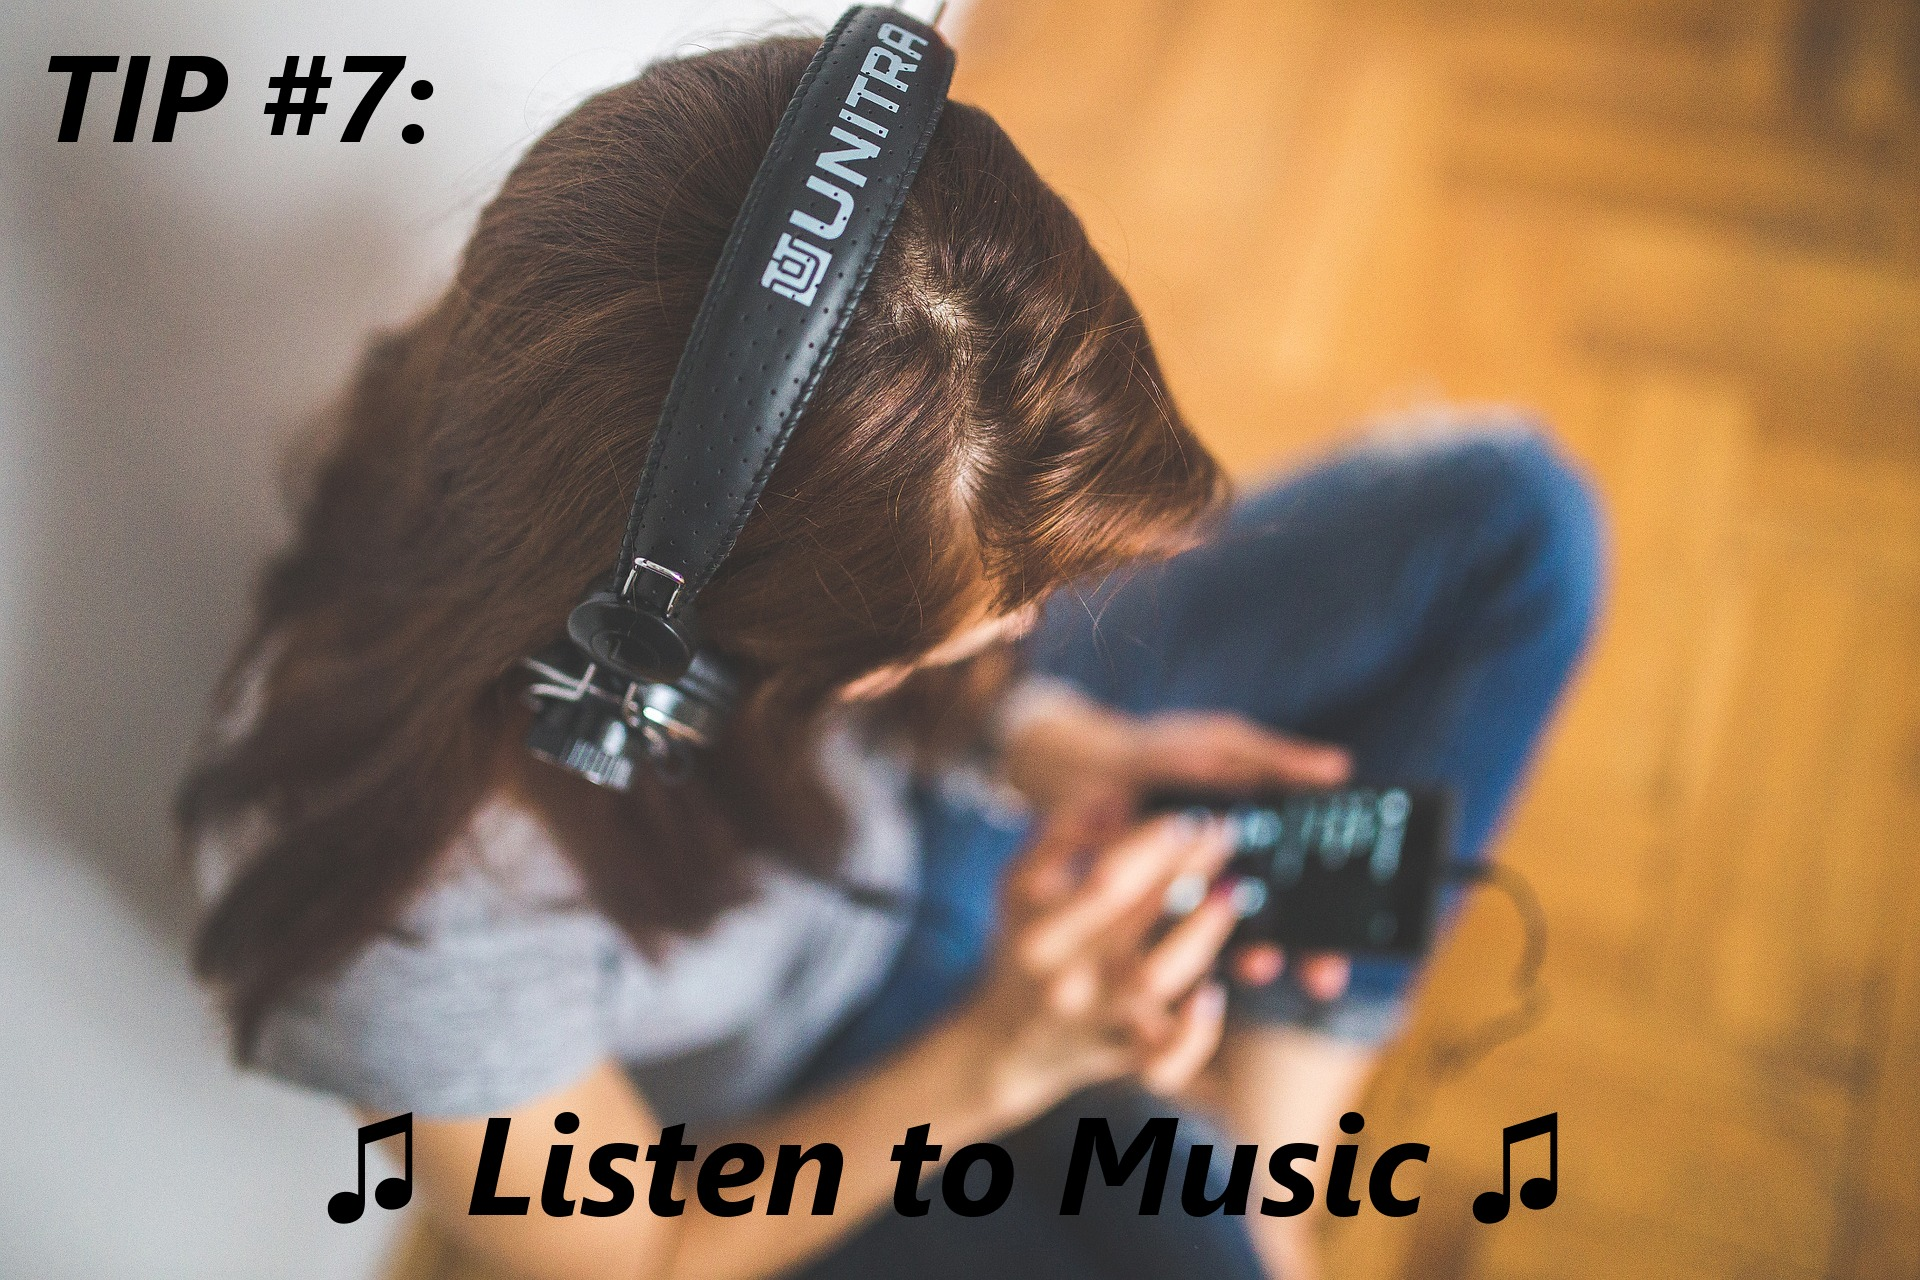 fastest way to get in the writing zone? Listen to music!